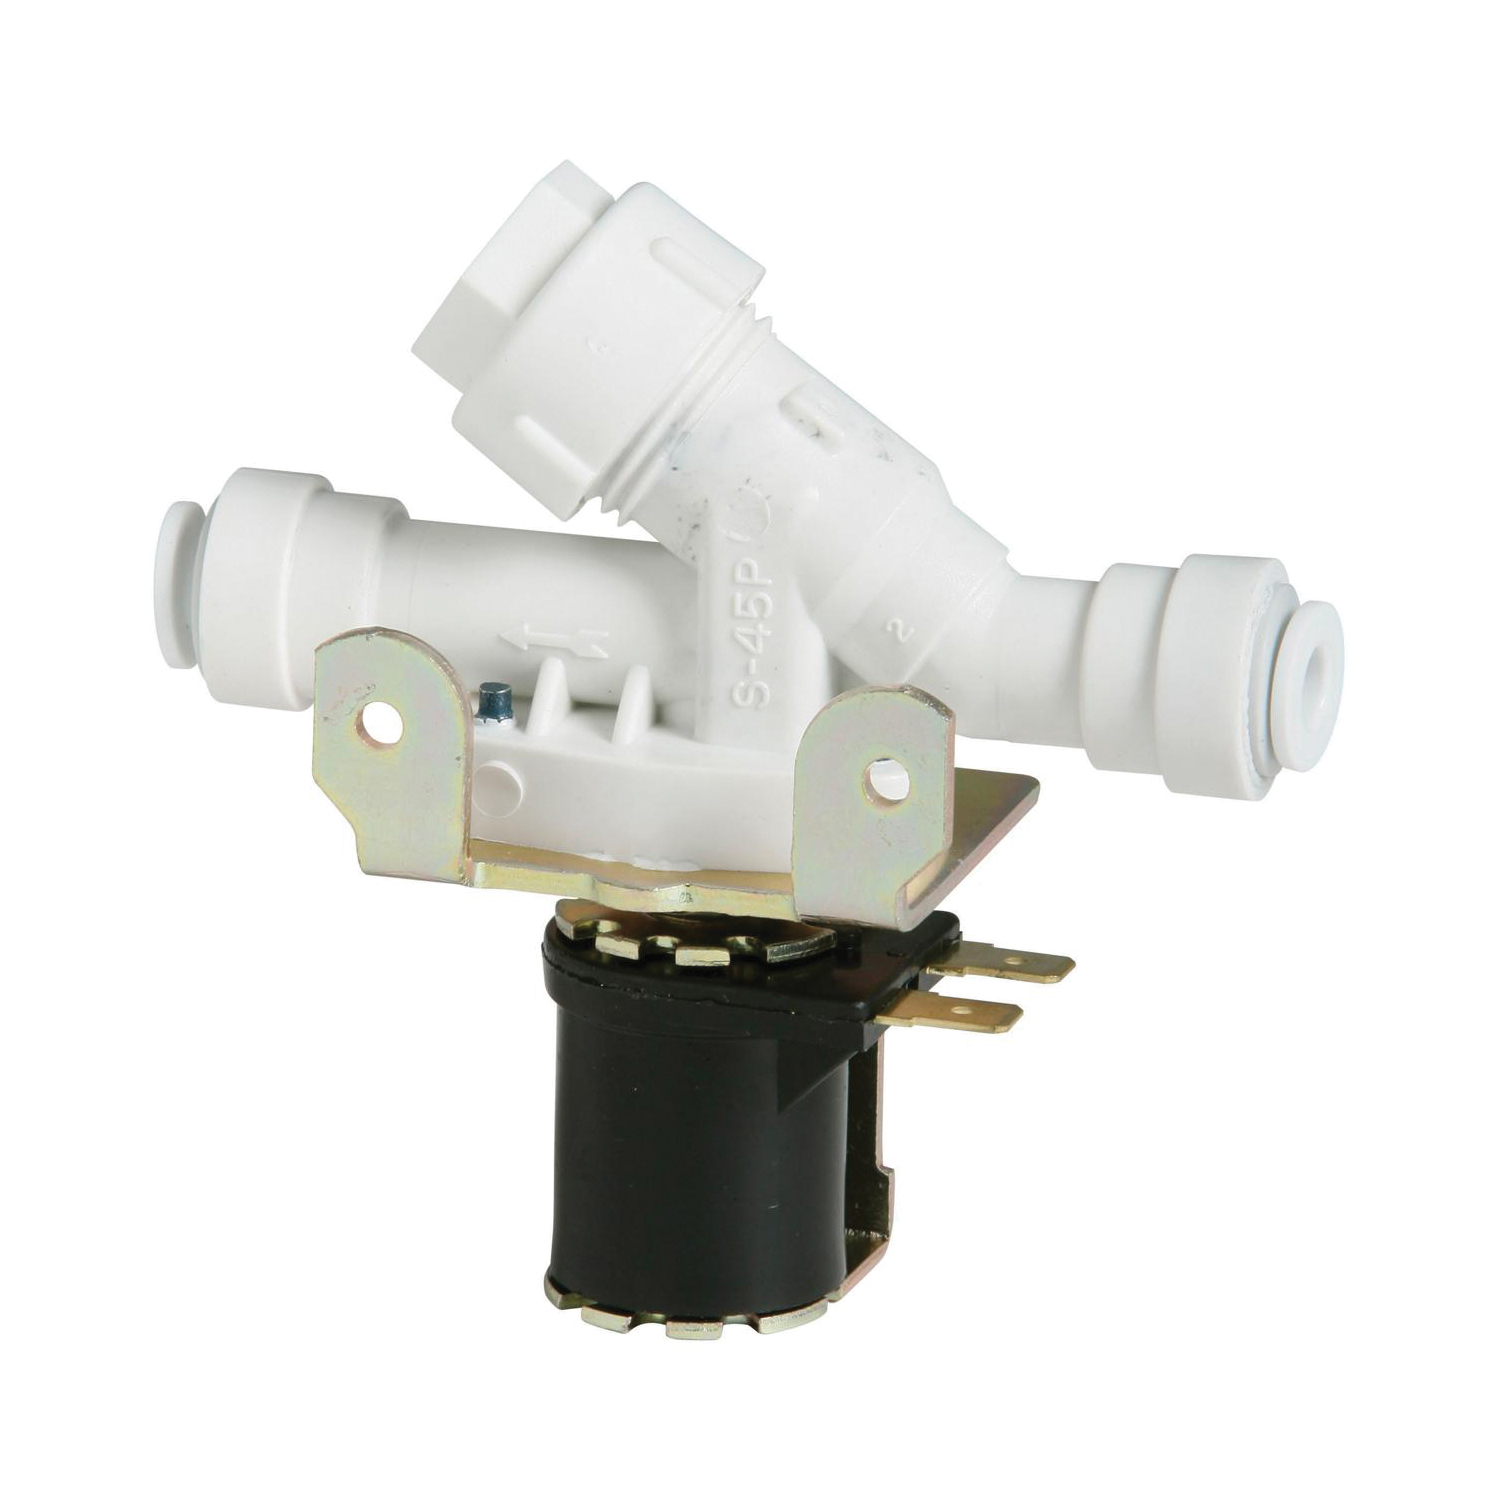 Halsey Taylor® 35981C Solenoid Valve, For Use With Various Elkay and Halsey Taylor Water Coolers, 1/4 in, 115 V, Import